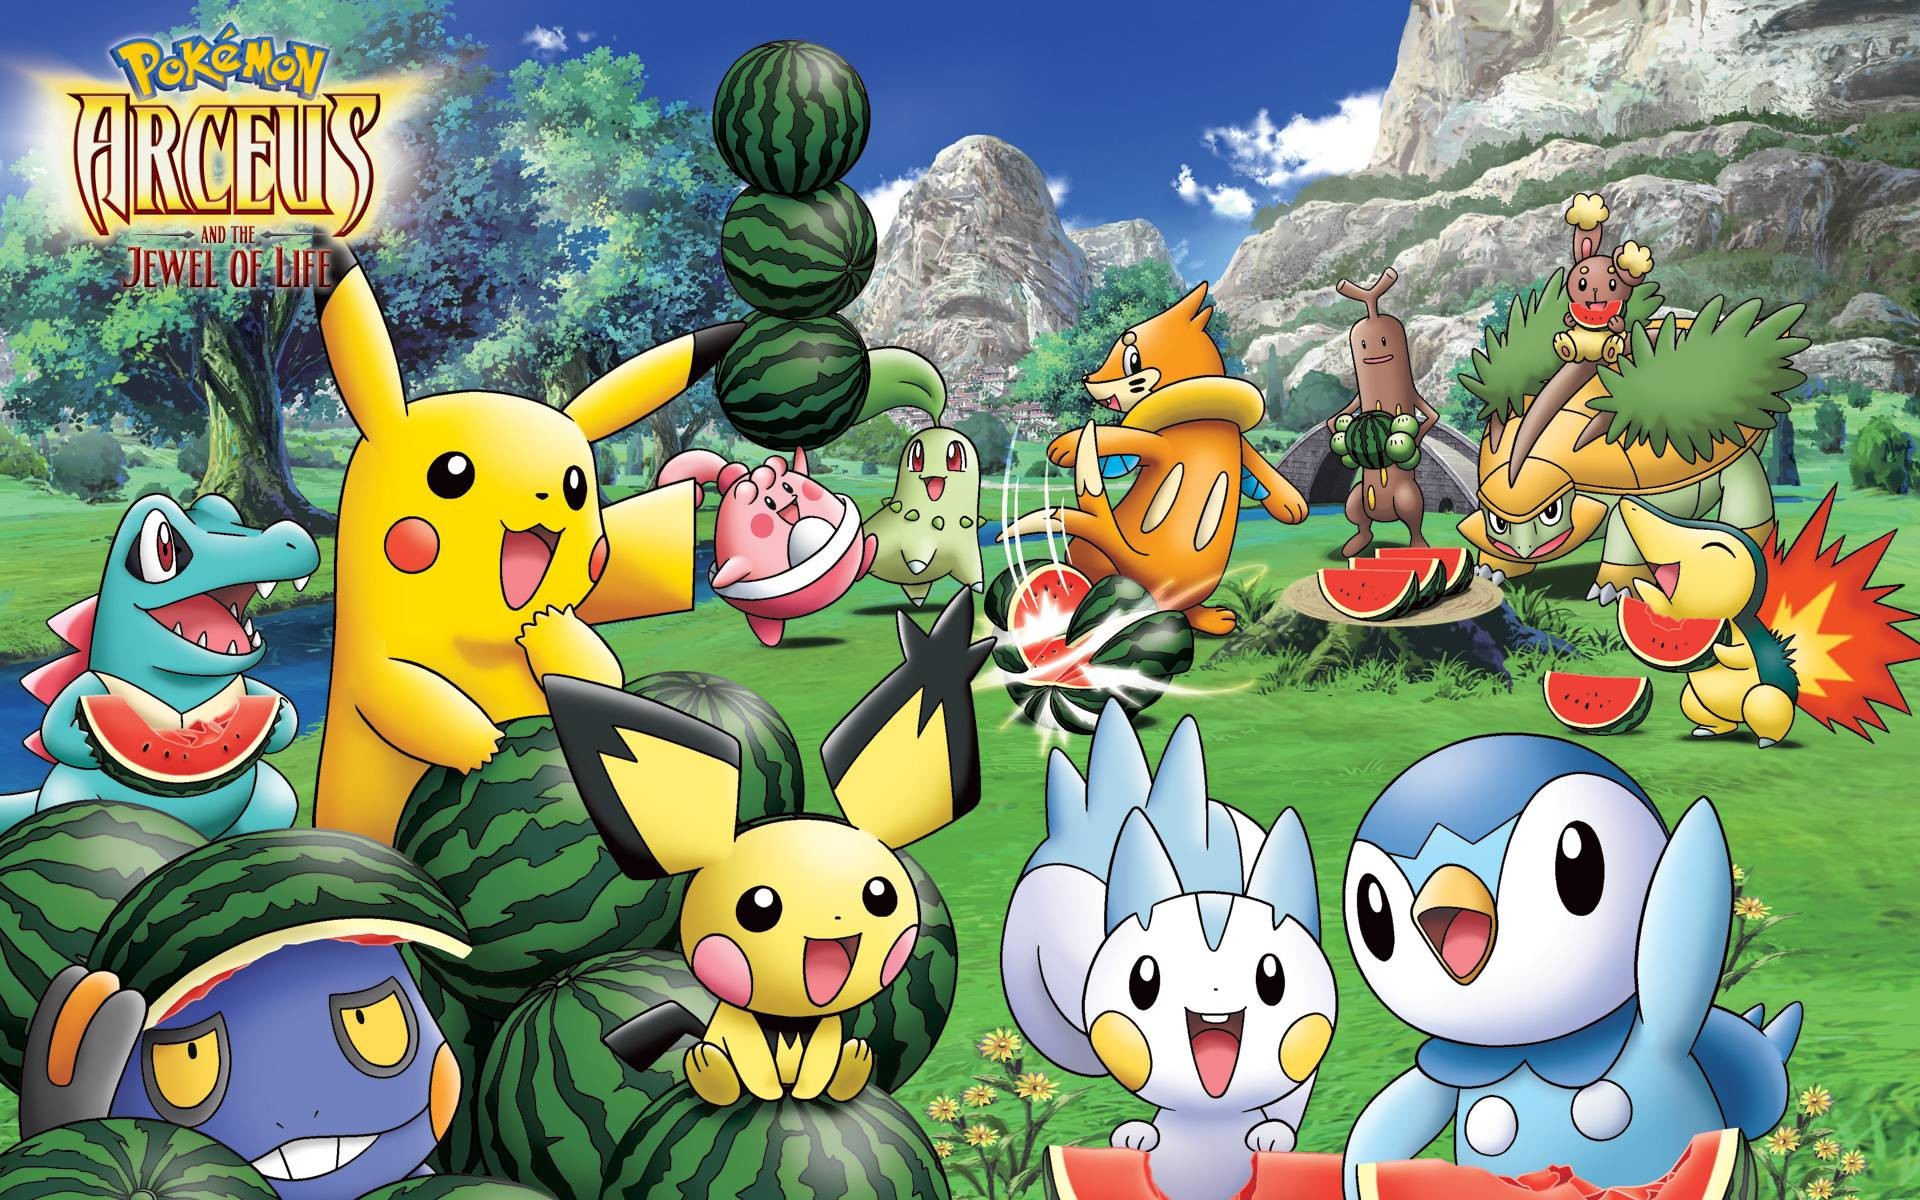 1920x1200 Pokemon desktop wallpapers - Very popular Anime TV show